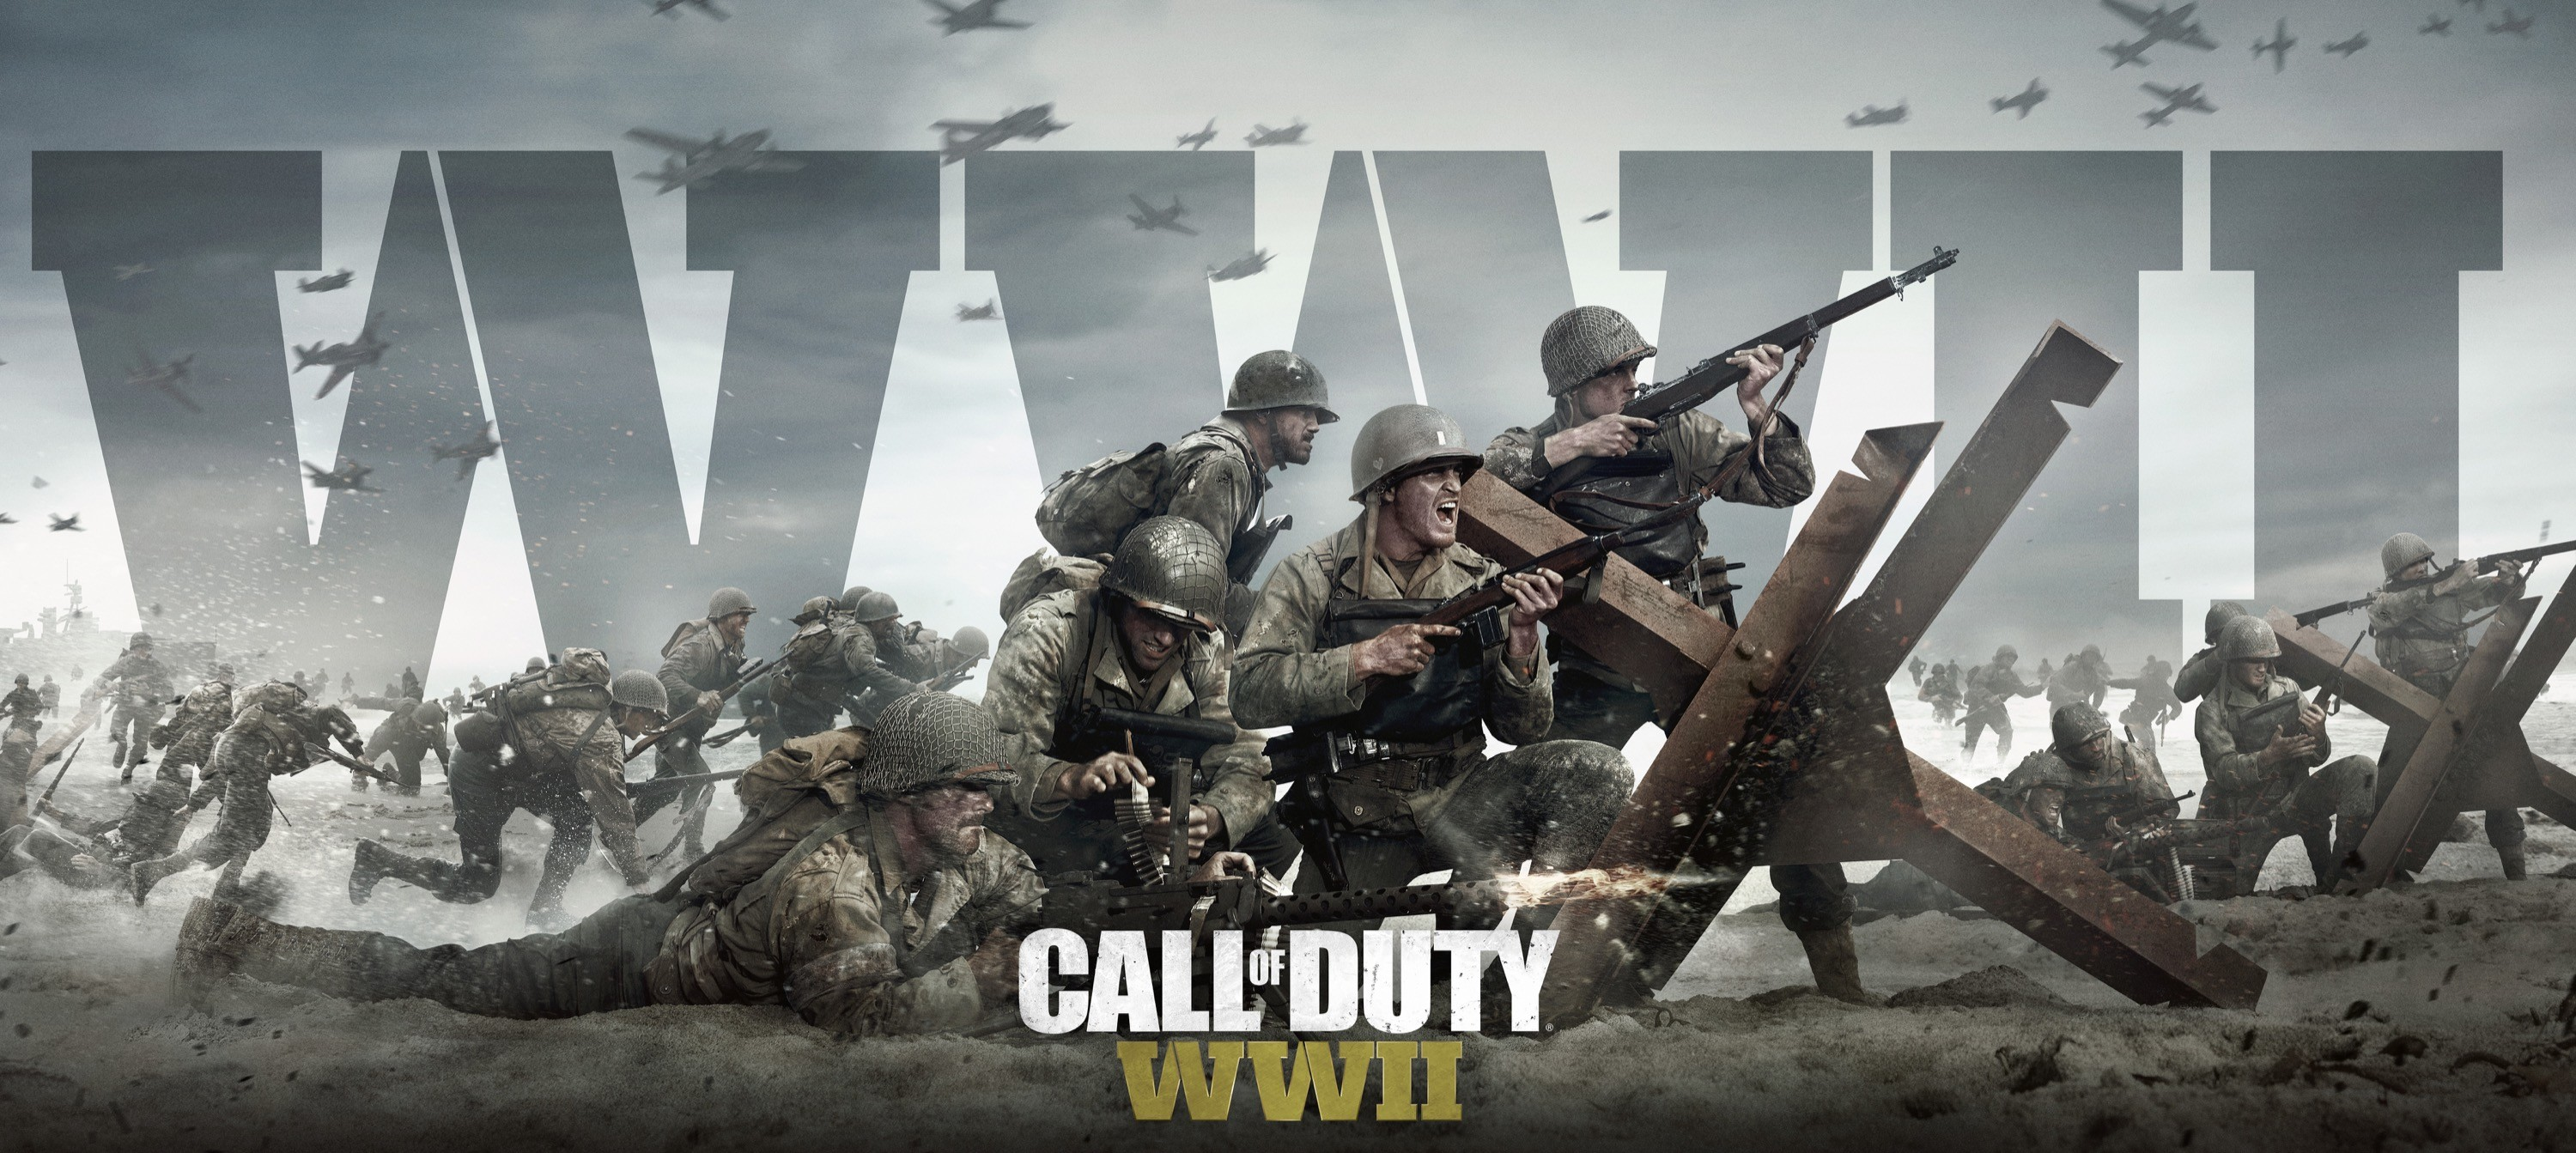 Call Of Duty Background Hd Posted By John Anderson